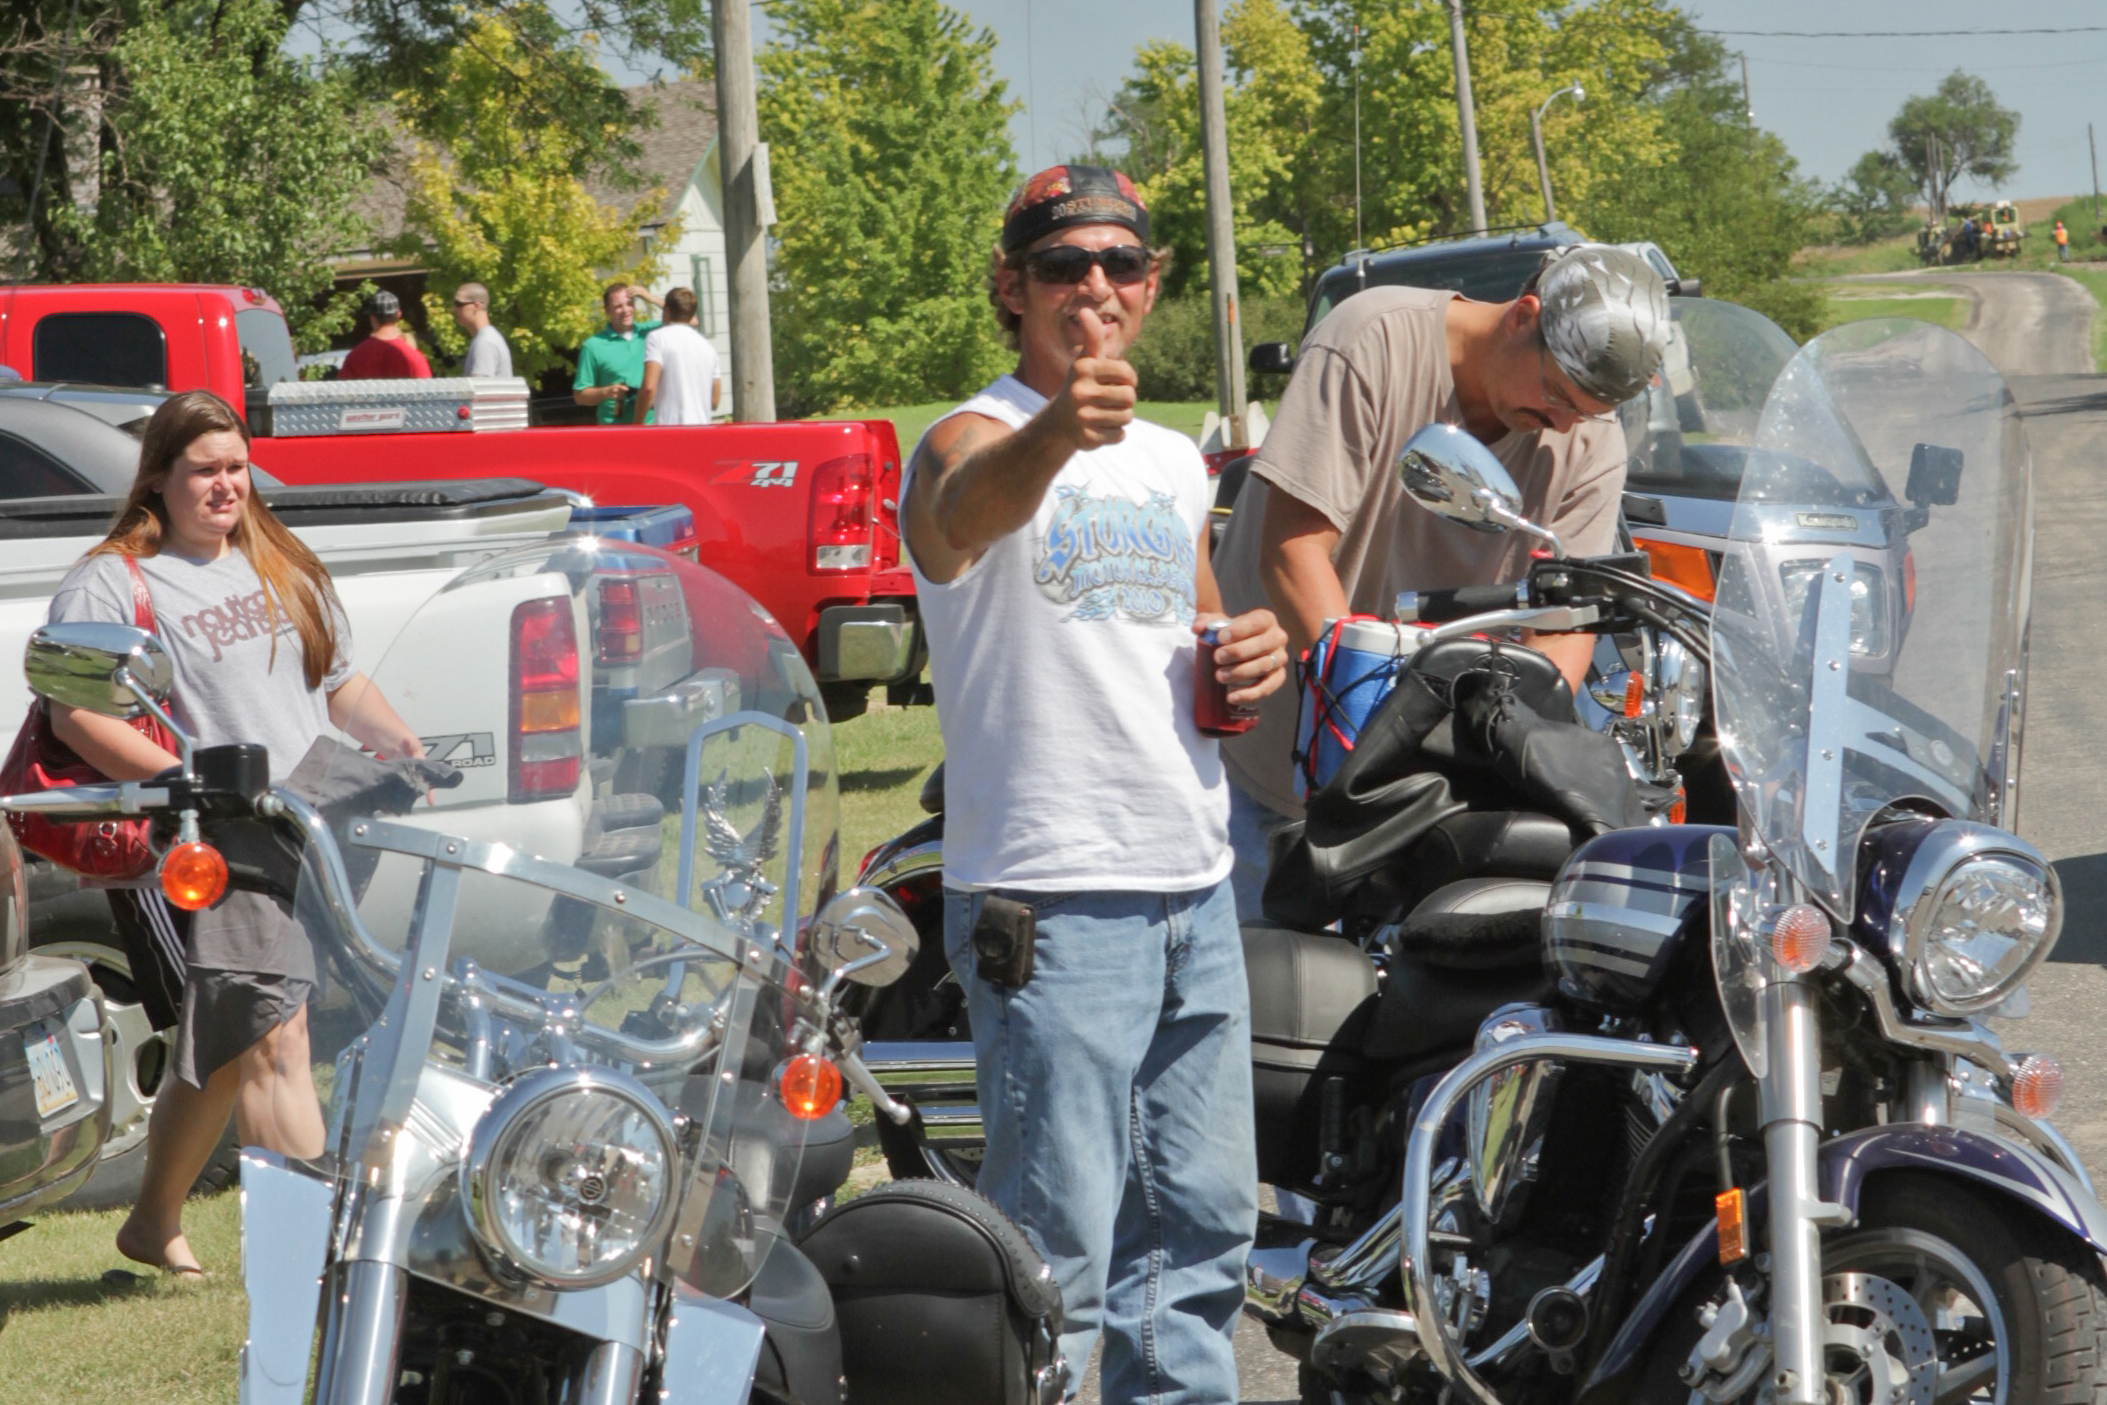 TiptonBikeRally_9868_2011